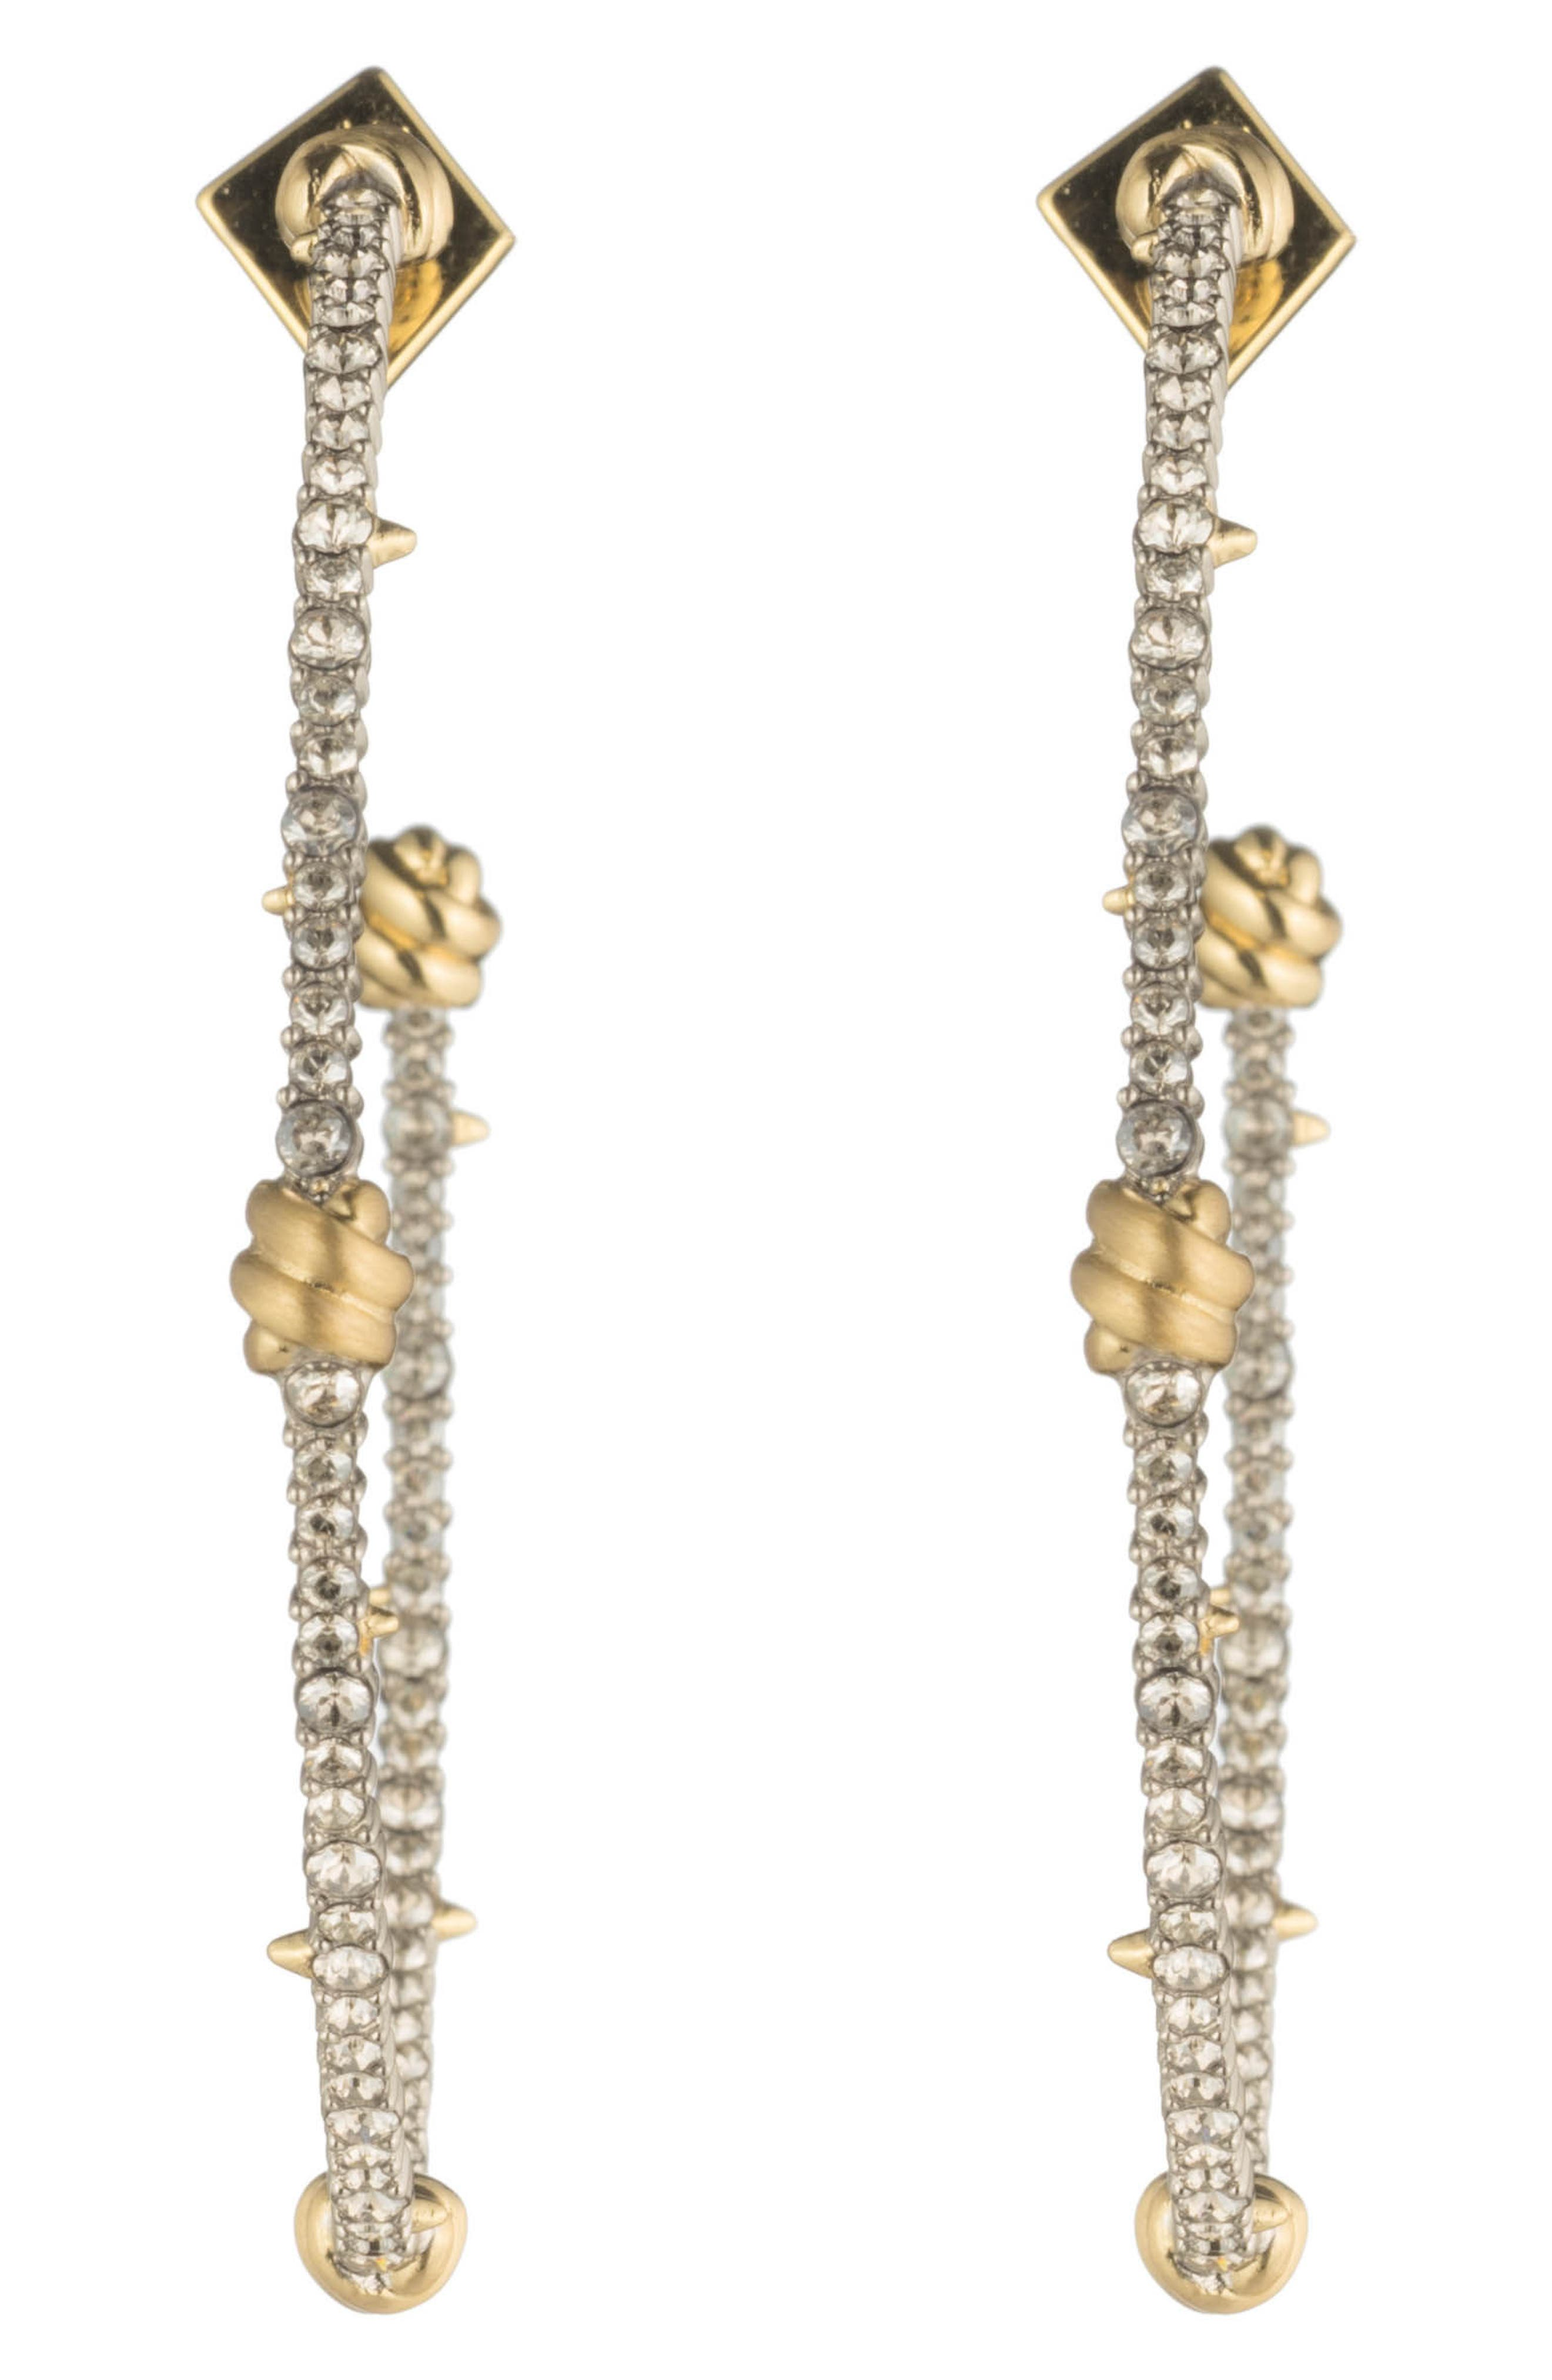 Crystal Pavé Knotted Hoop Earrings,                             Alternate thumbnail 3, color,                             GOLD/ SILVER